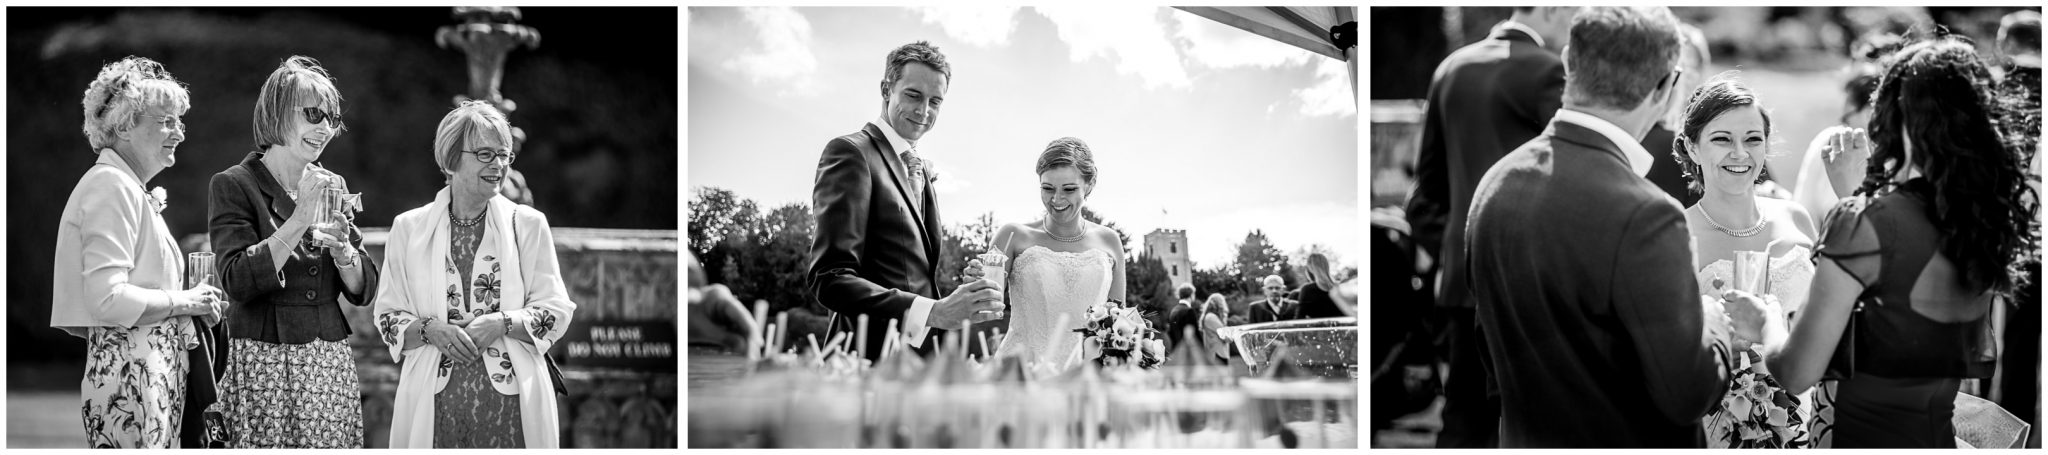 Avington Park wedding photography wedding party during drinks reception